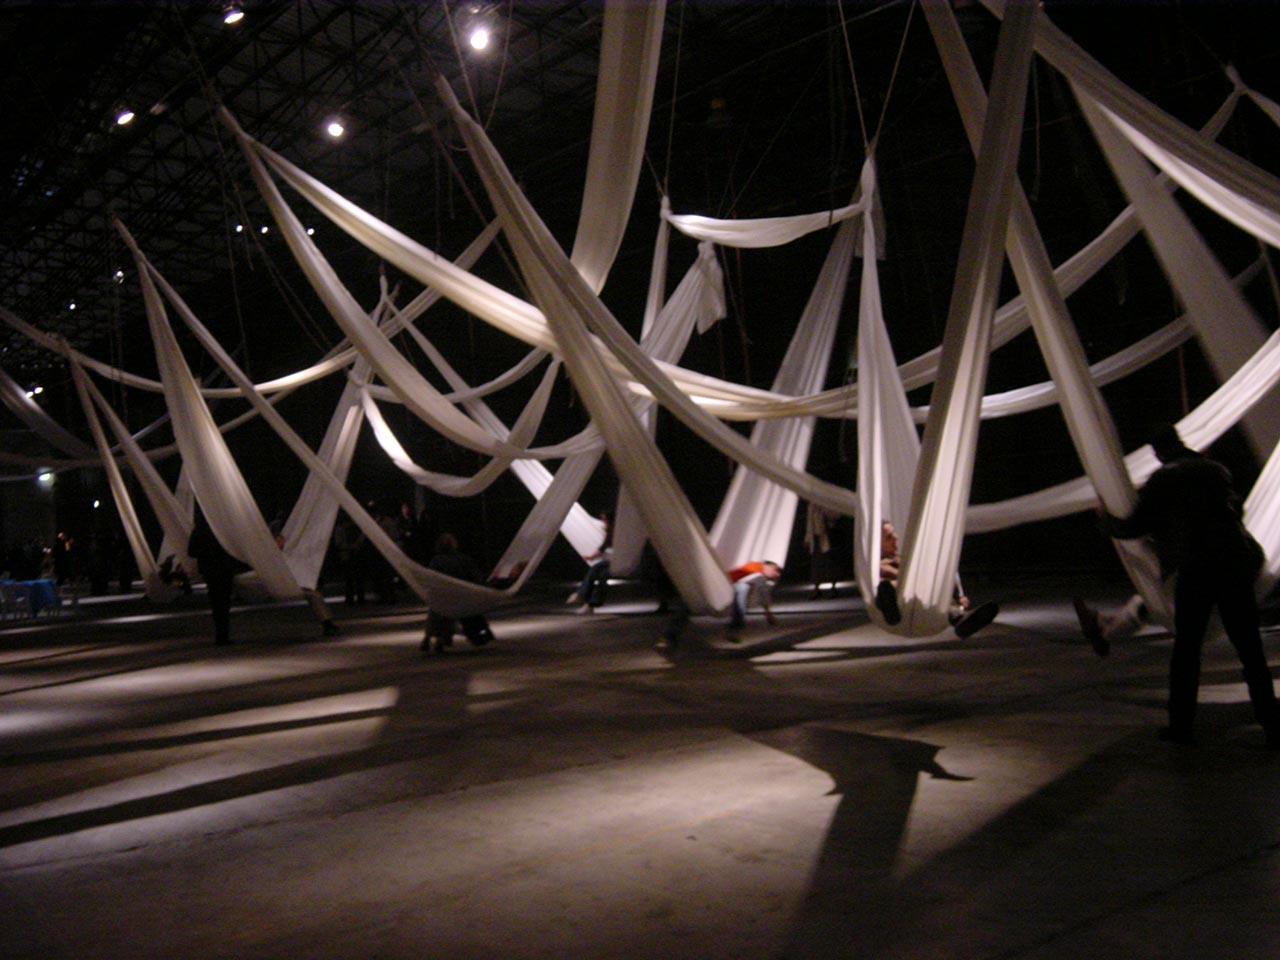 Amacario. Gestural Collective Architecture to inhabit, suspended, uncertain spaces. Image Credit: Stalker Archive